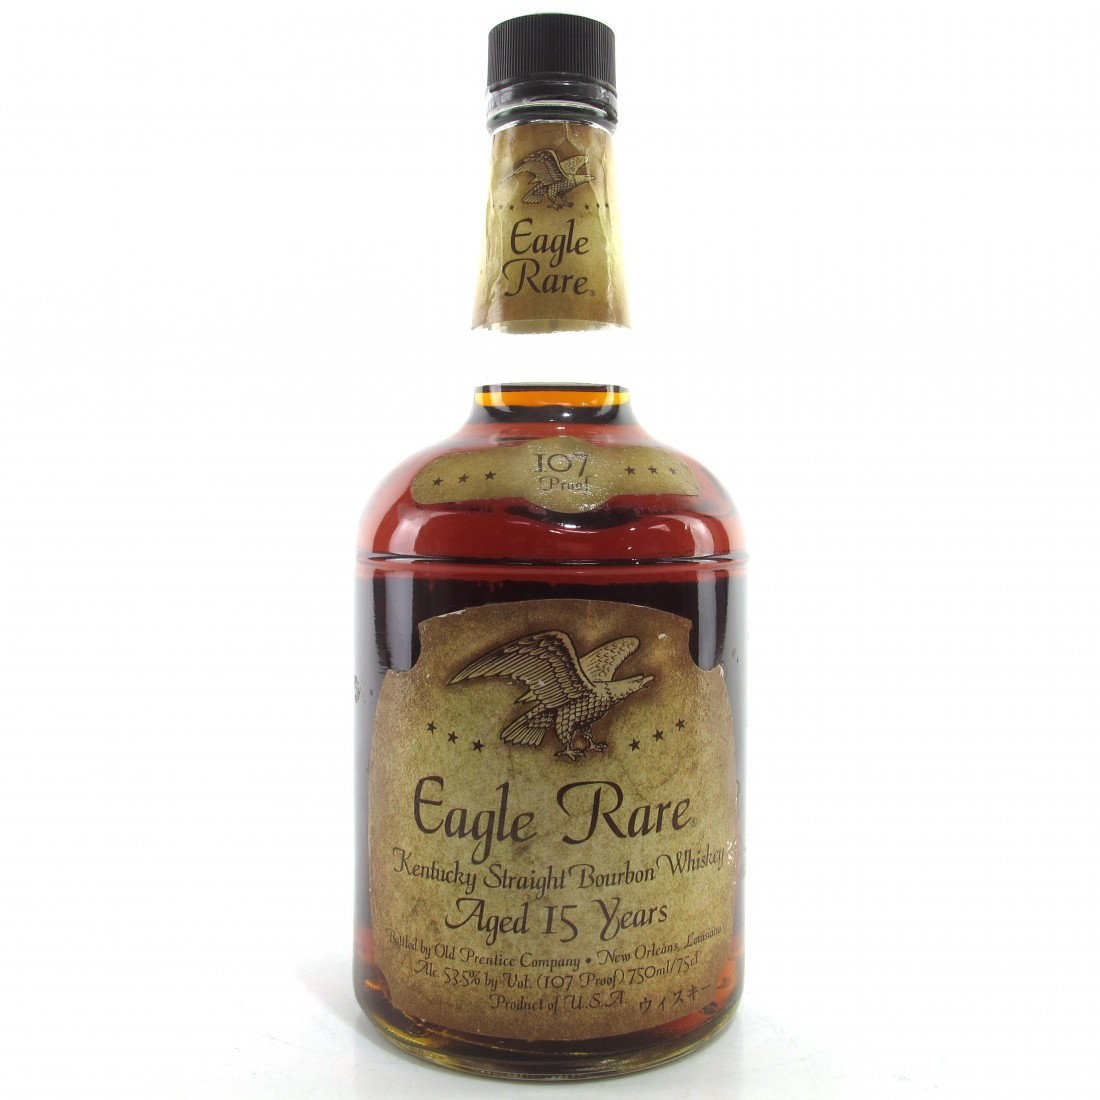 Eagle Rare 15 Year Old 107 Proof 1990s / Japanese Import